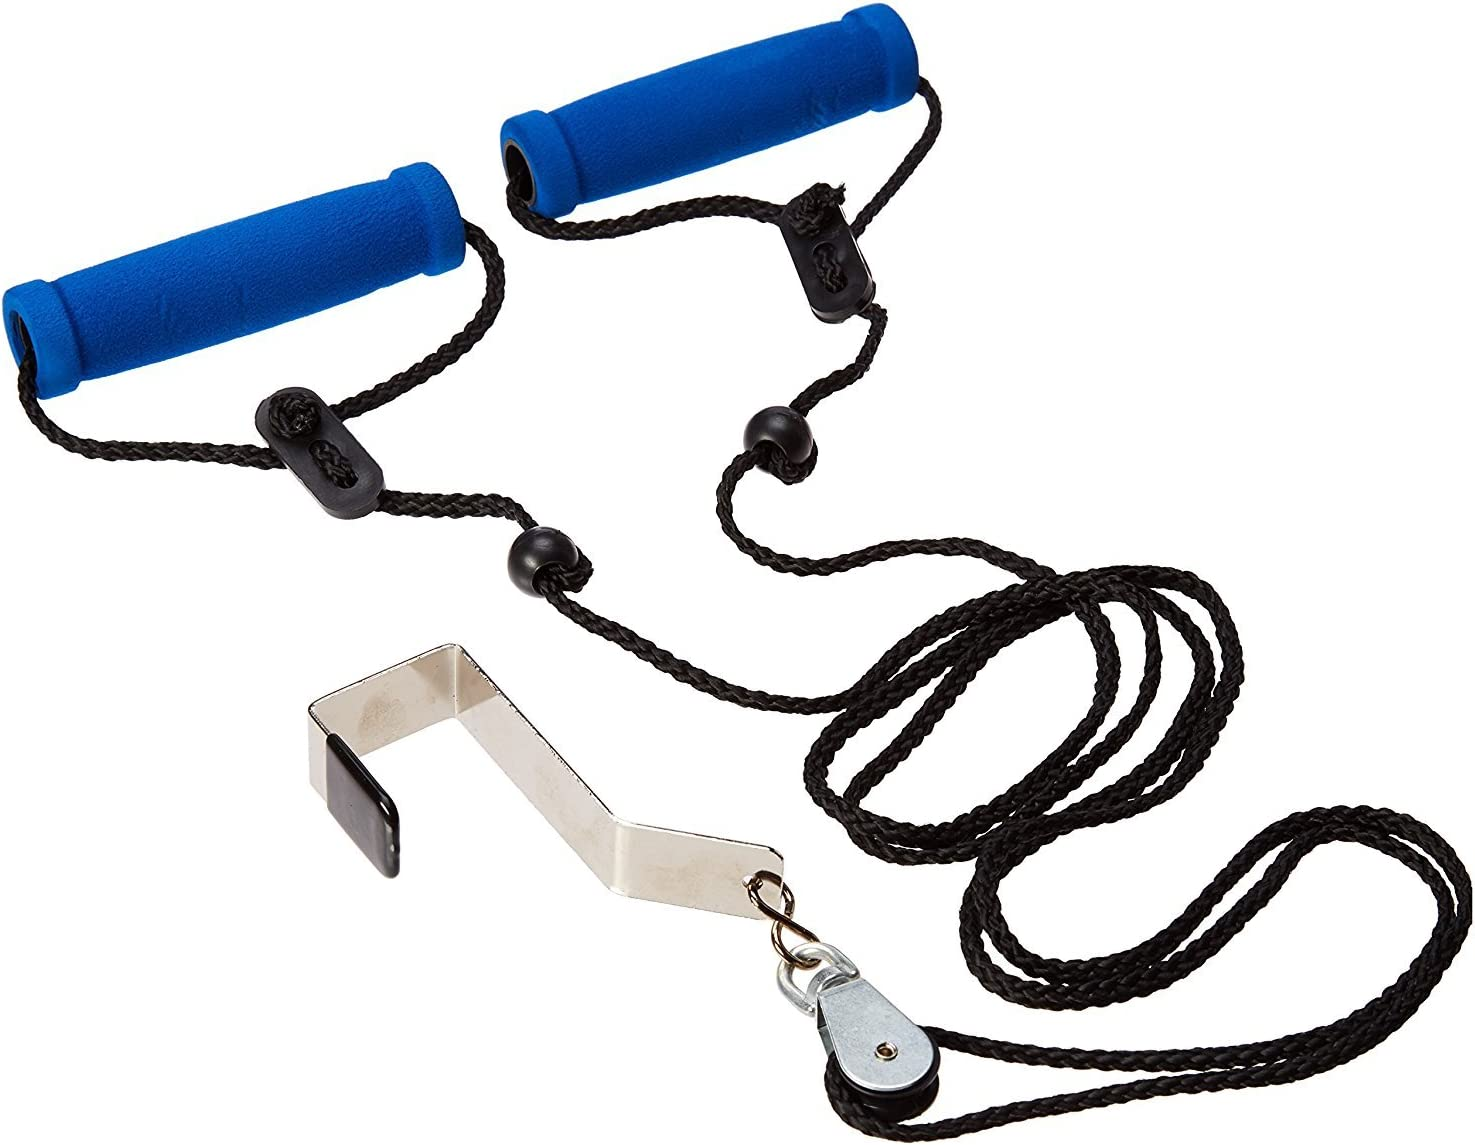 BodyHealt Overhead Shoulder Pulley – Overdoor Pulley with Large Foam Grip for Optimal Comfort- Simple Yet Effective Exercise Tool for Upper Body Toning, Rehab, Physical Therapy & Fitness Aid (Bracket)